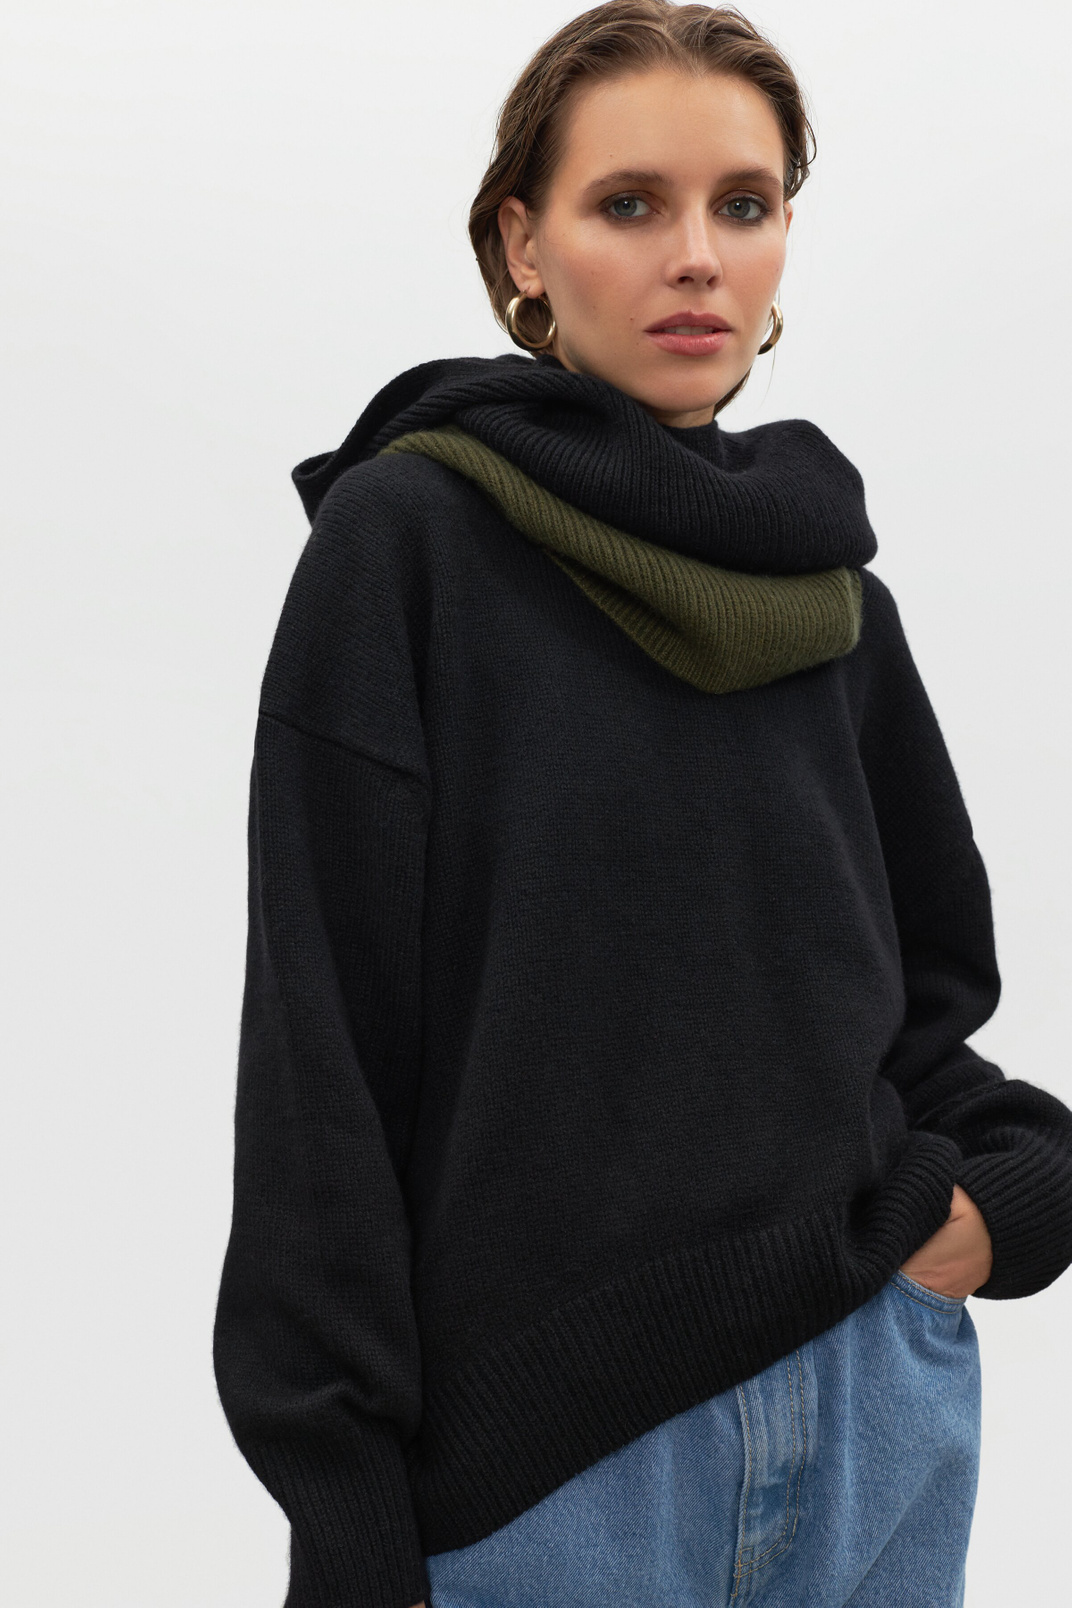 Ribby hood 100% cashmere, Black, one size